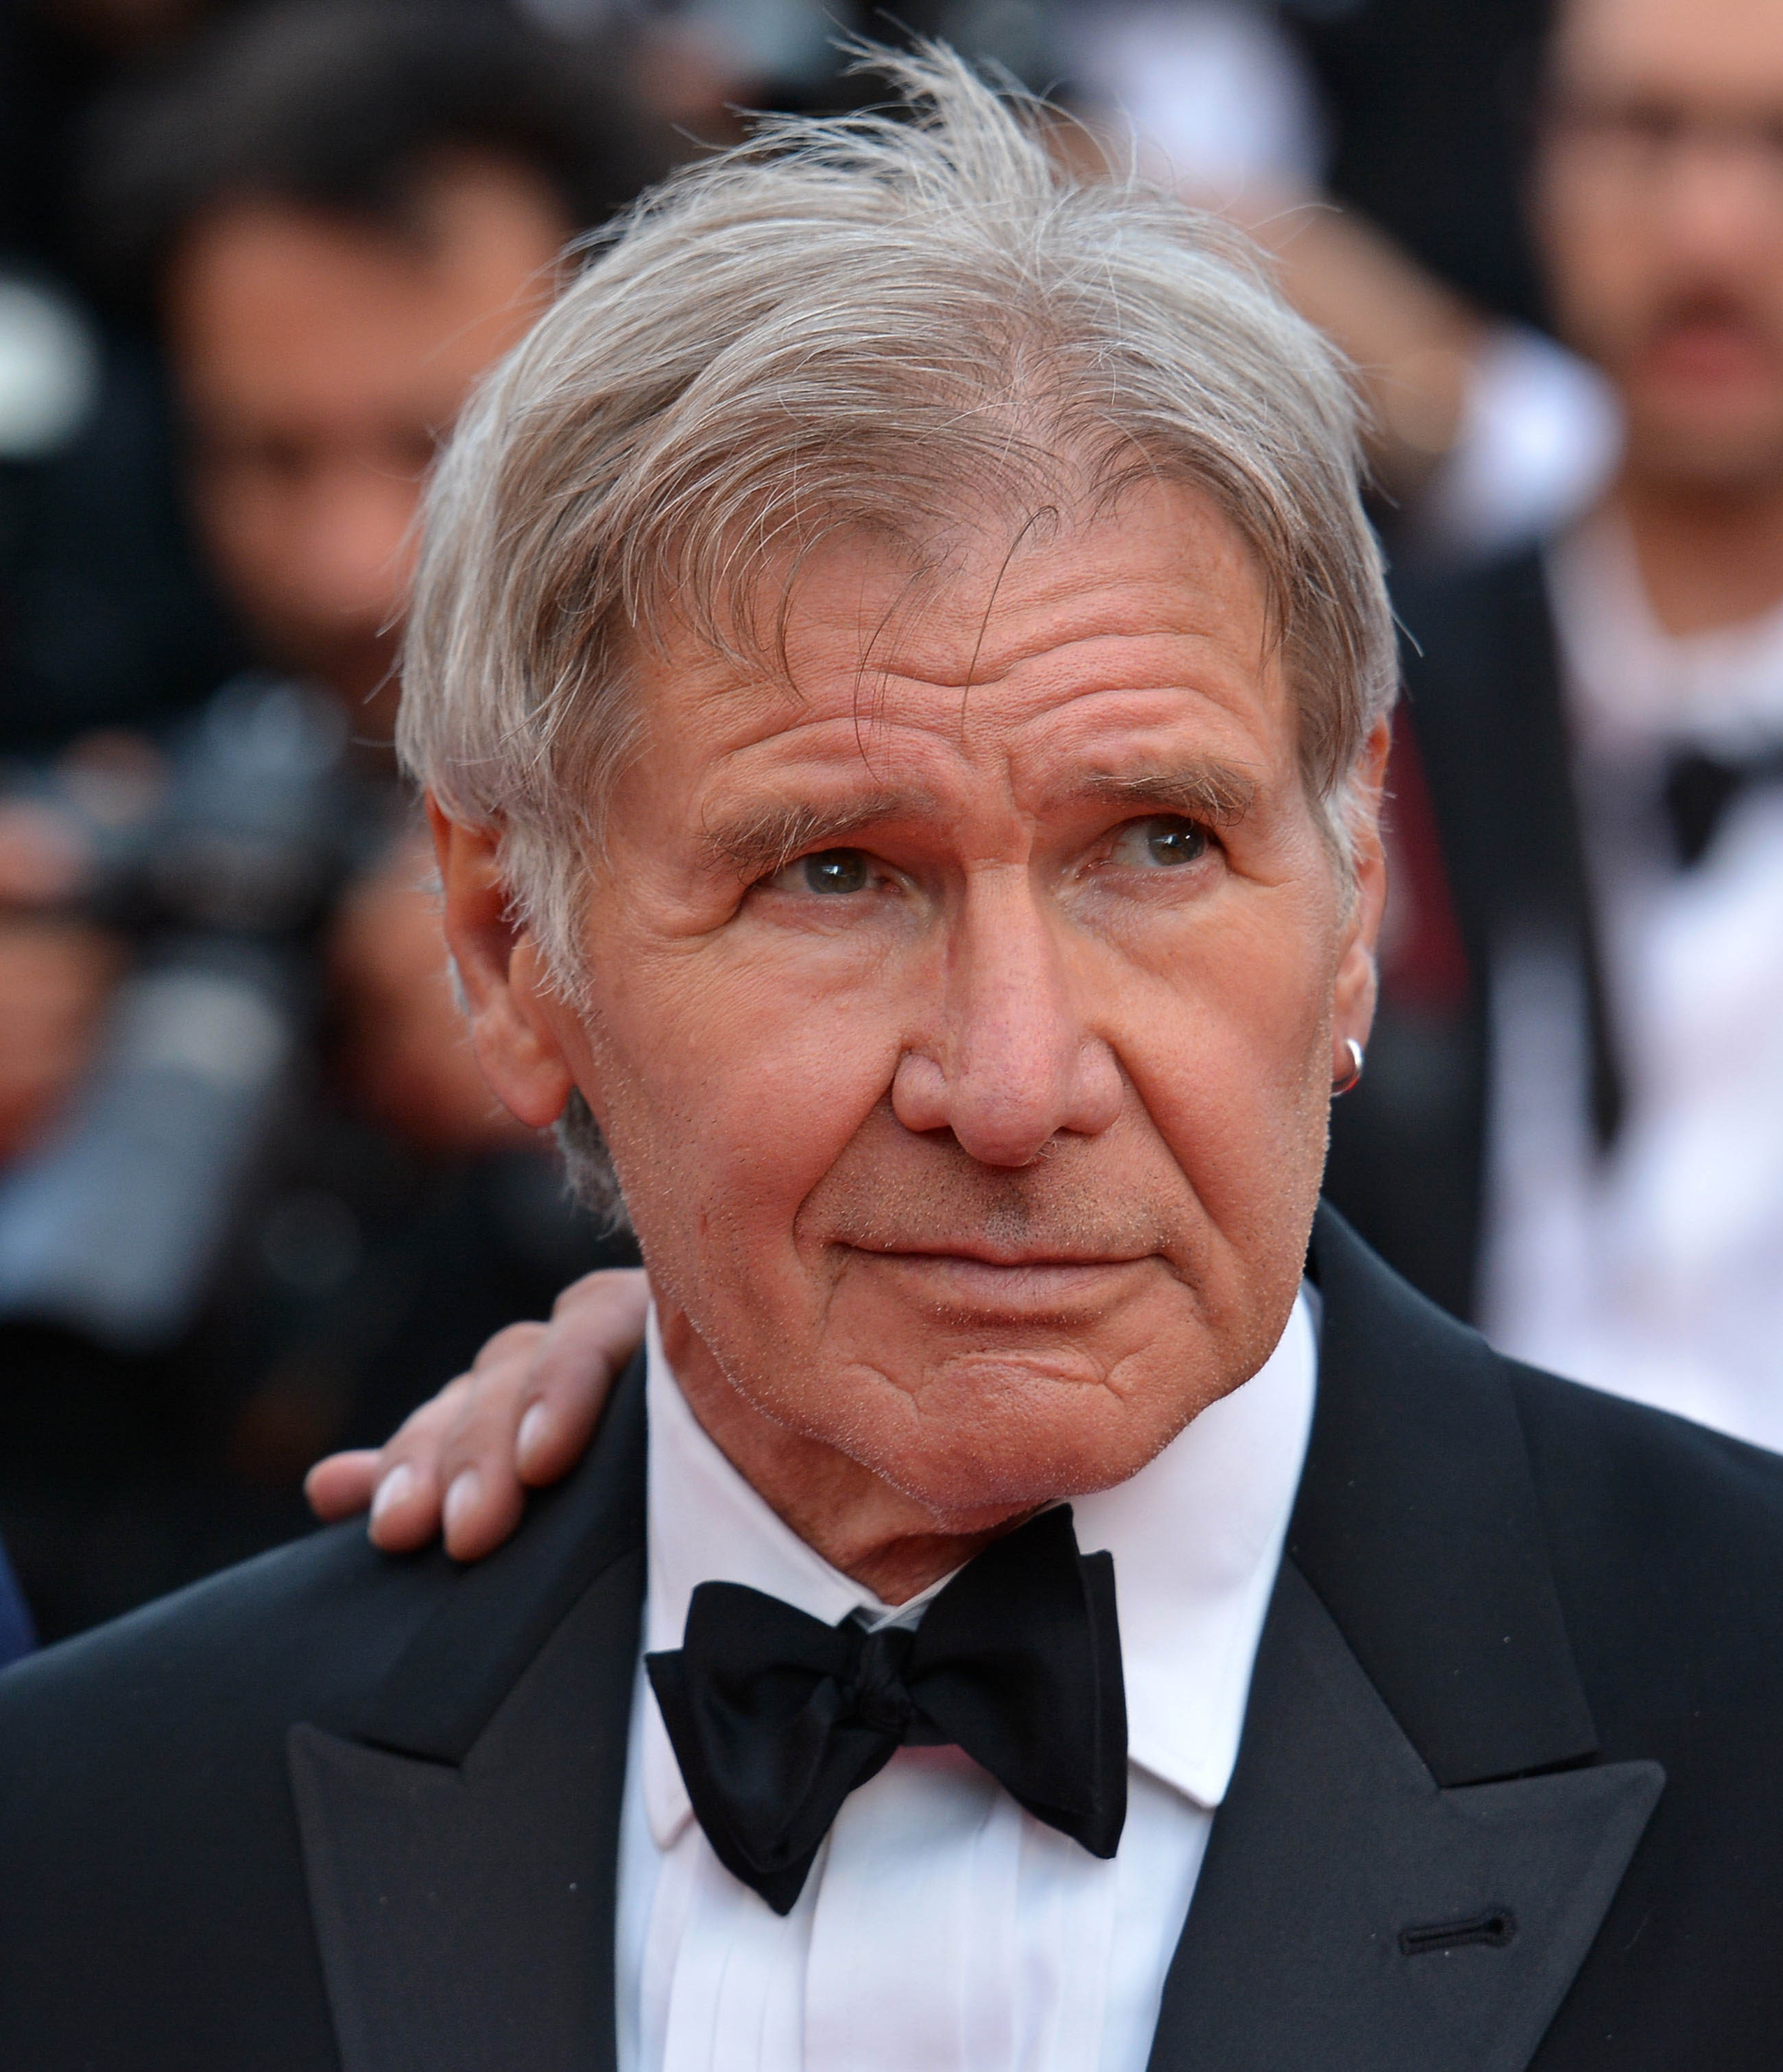 Harrison Ford lives a double life as a an actor and an activist